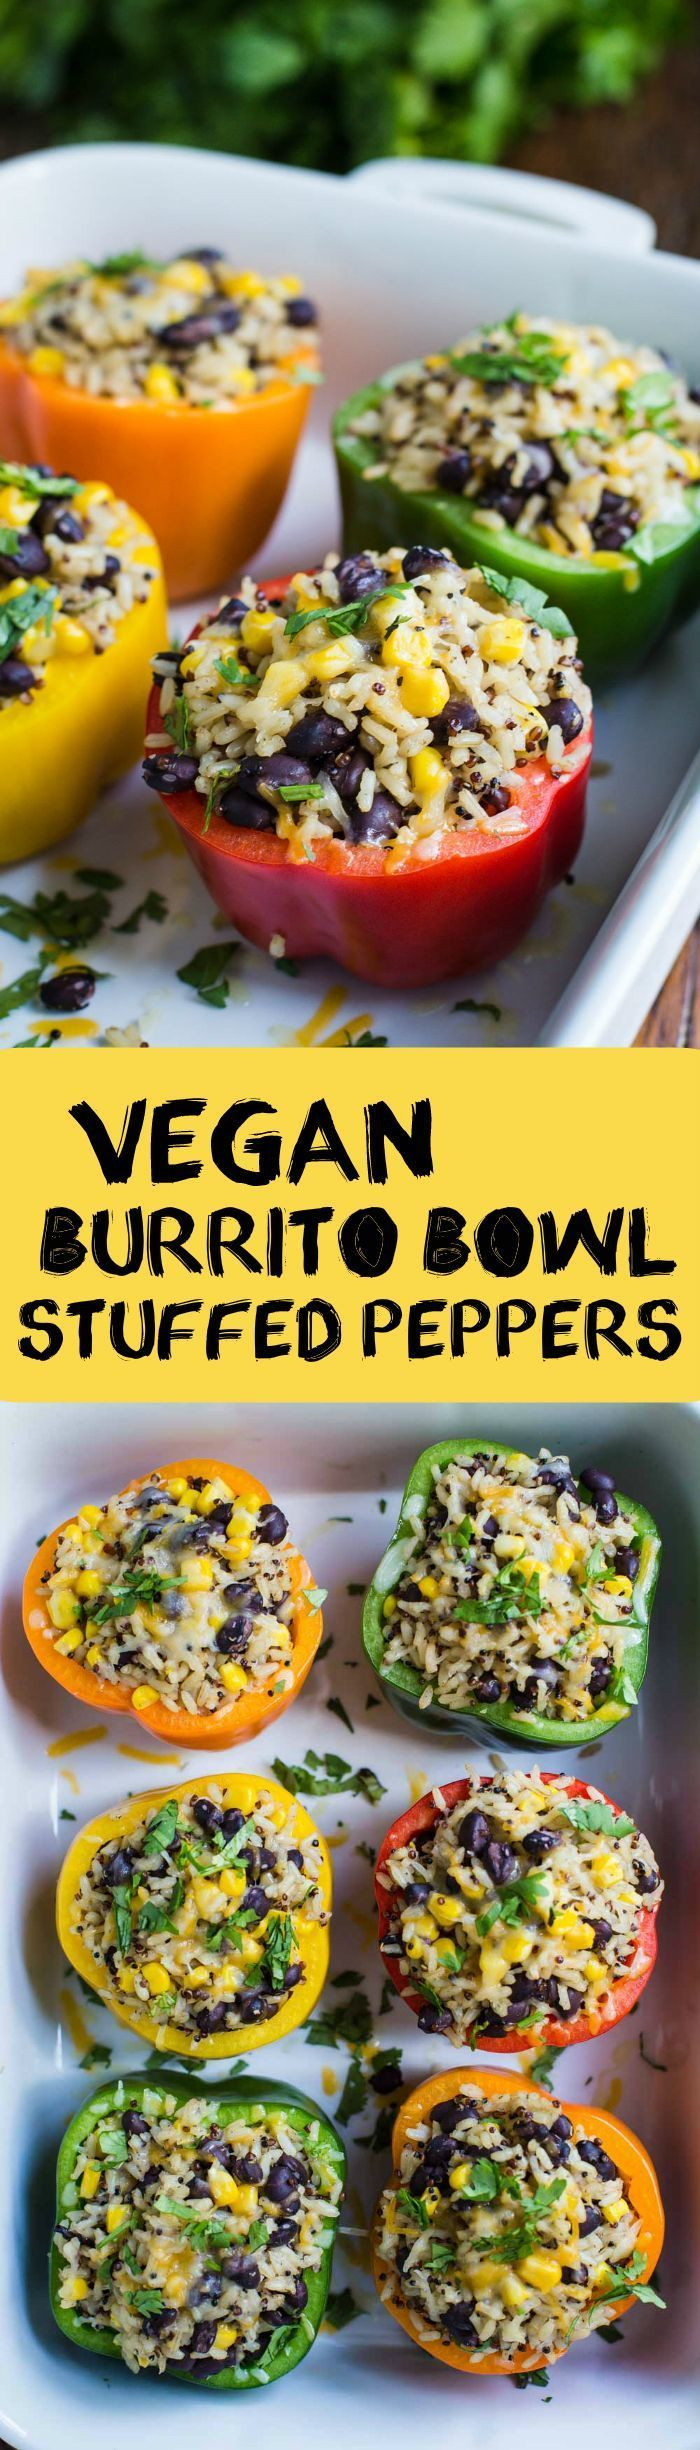 Burrito Bowl Stuffed Peppers- this recipe is VEGAN, super easy to make, and perfect for dinner or leftover lunches!! Something the whole family will love. / vegan dinner / weeknight dinner / clean eating dinner / healthy dinner